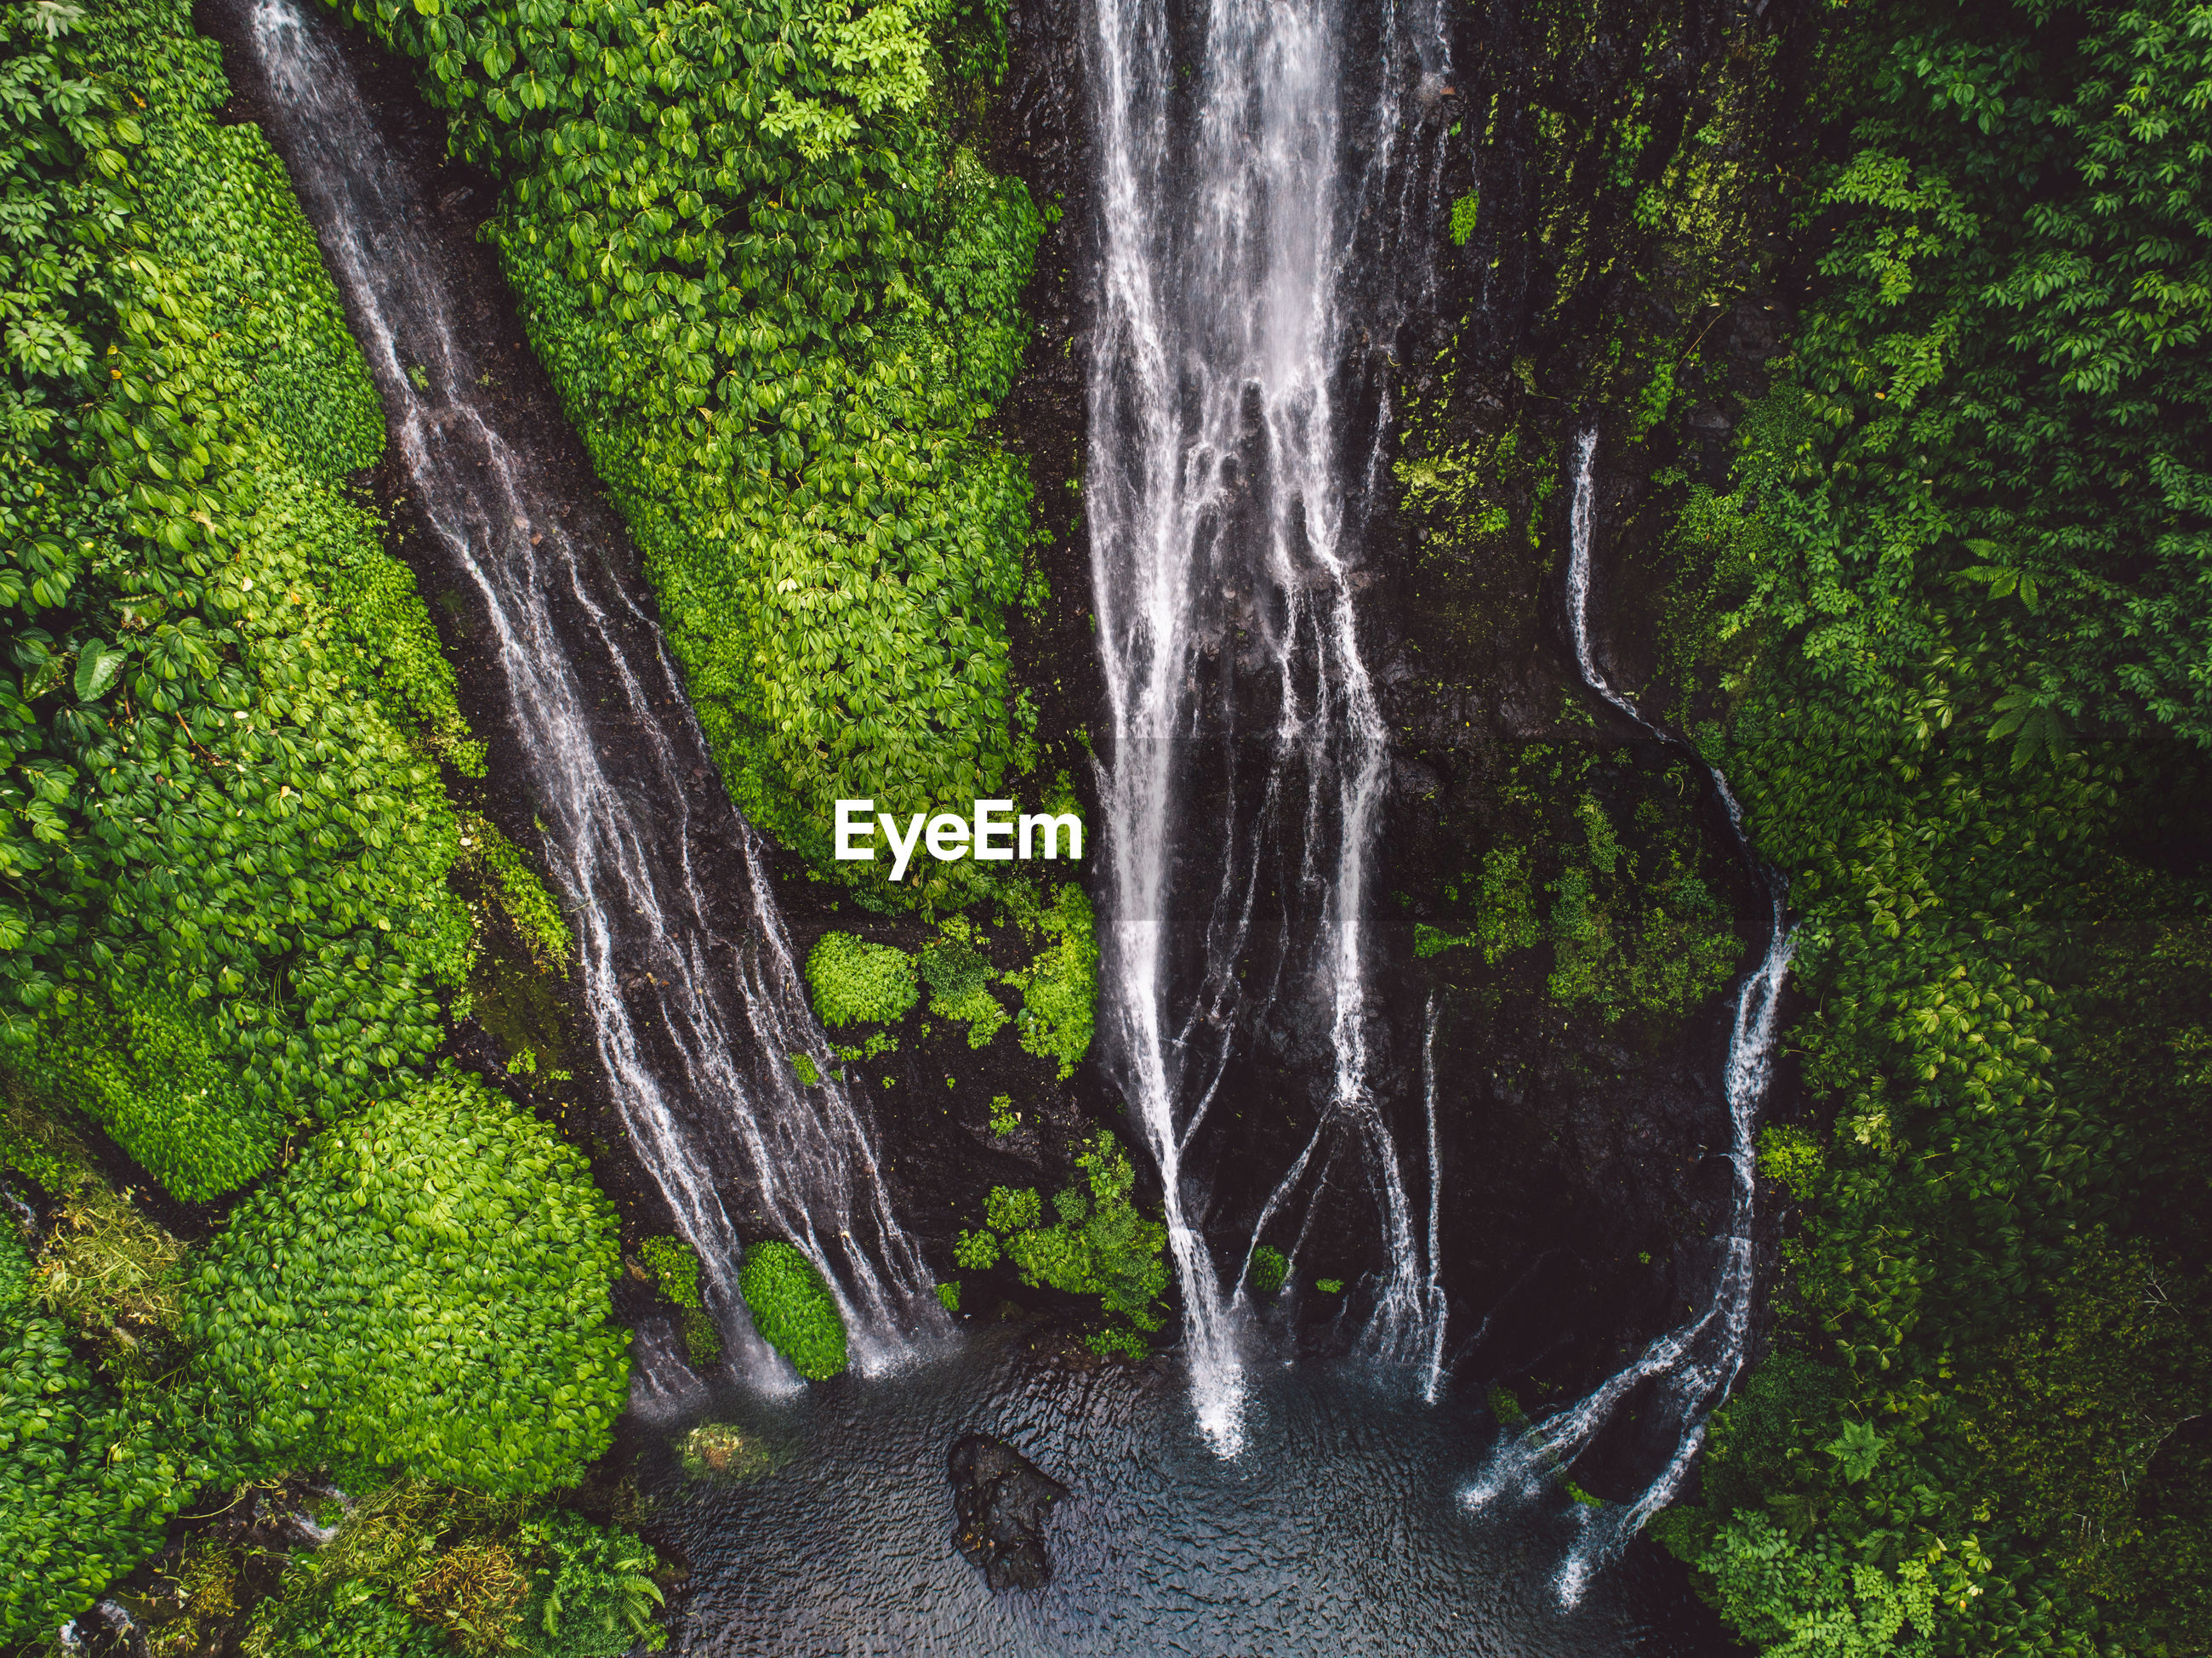 SCENIC VIEW OF WATERFALL ON TREES IN FOREST